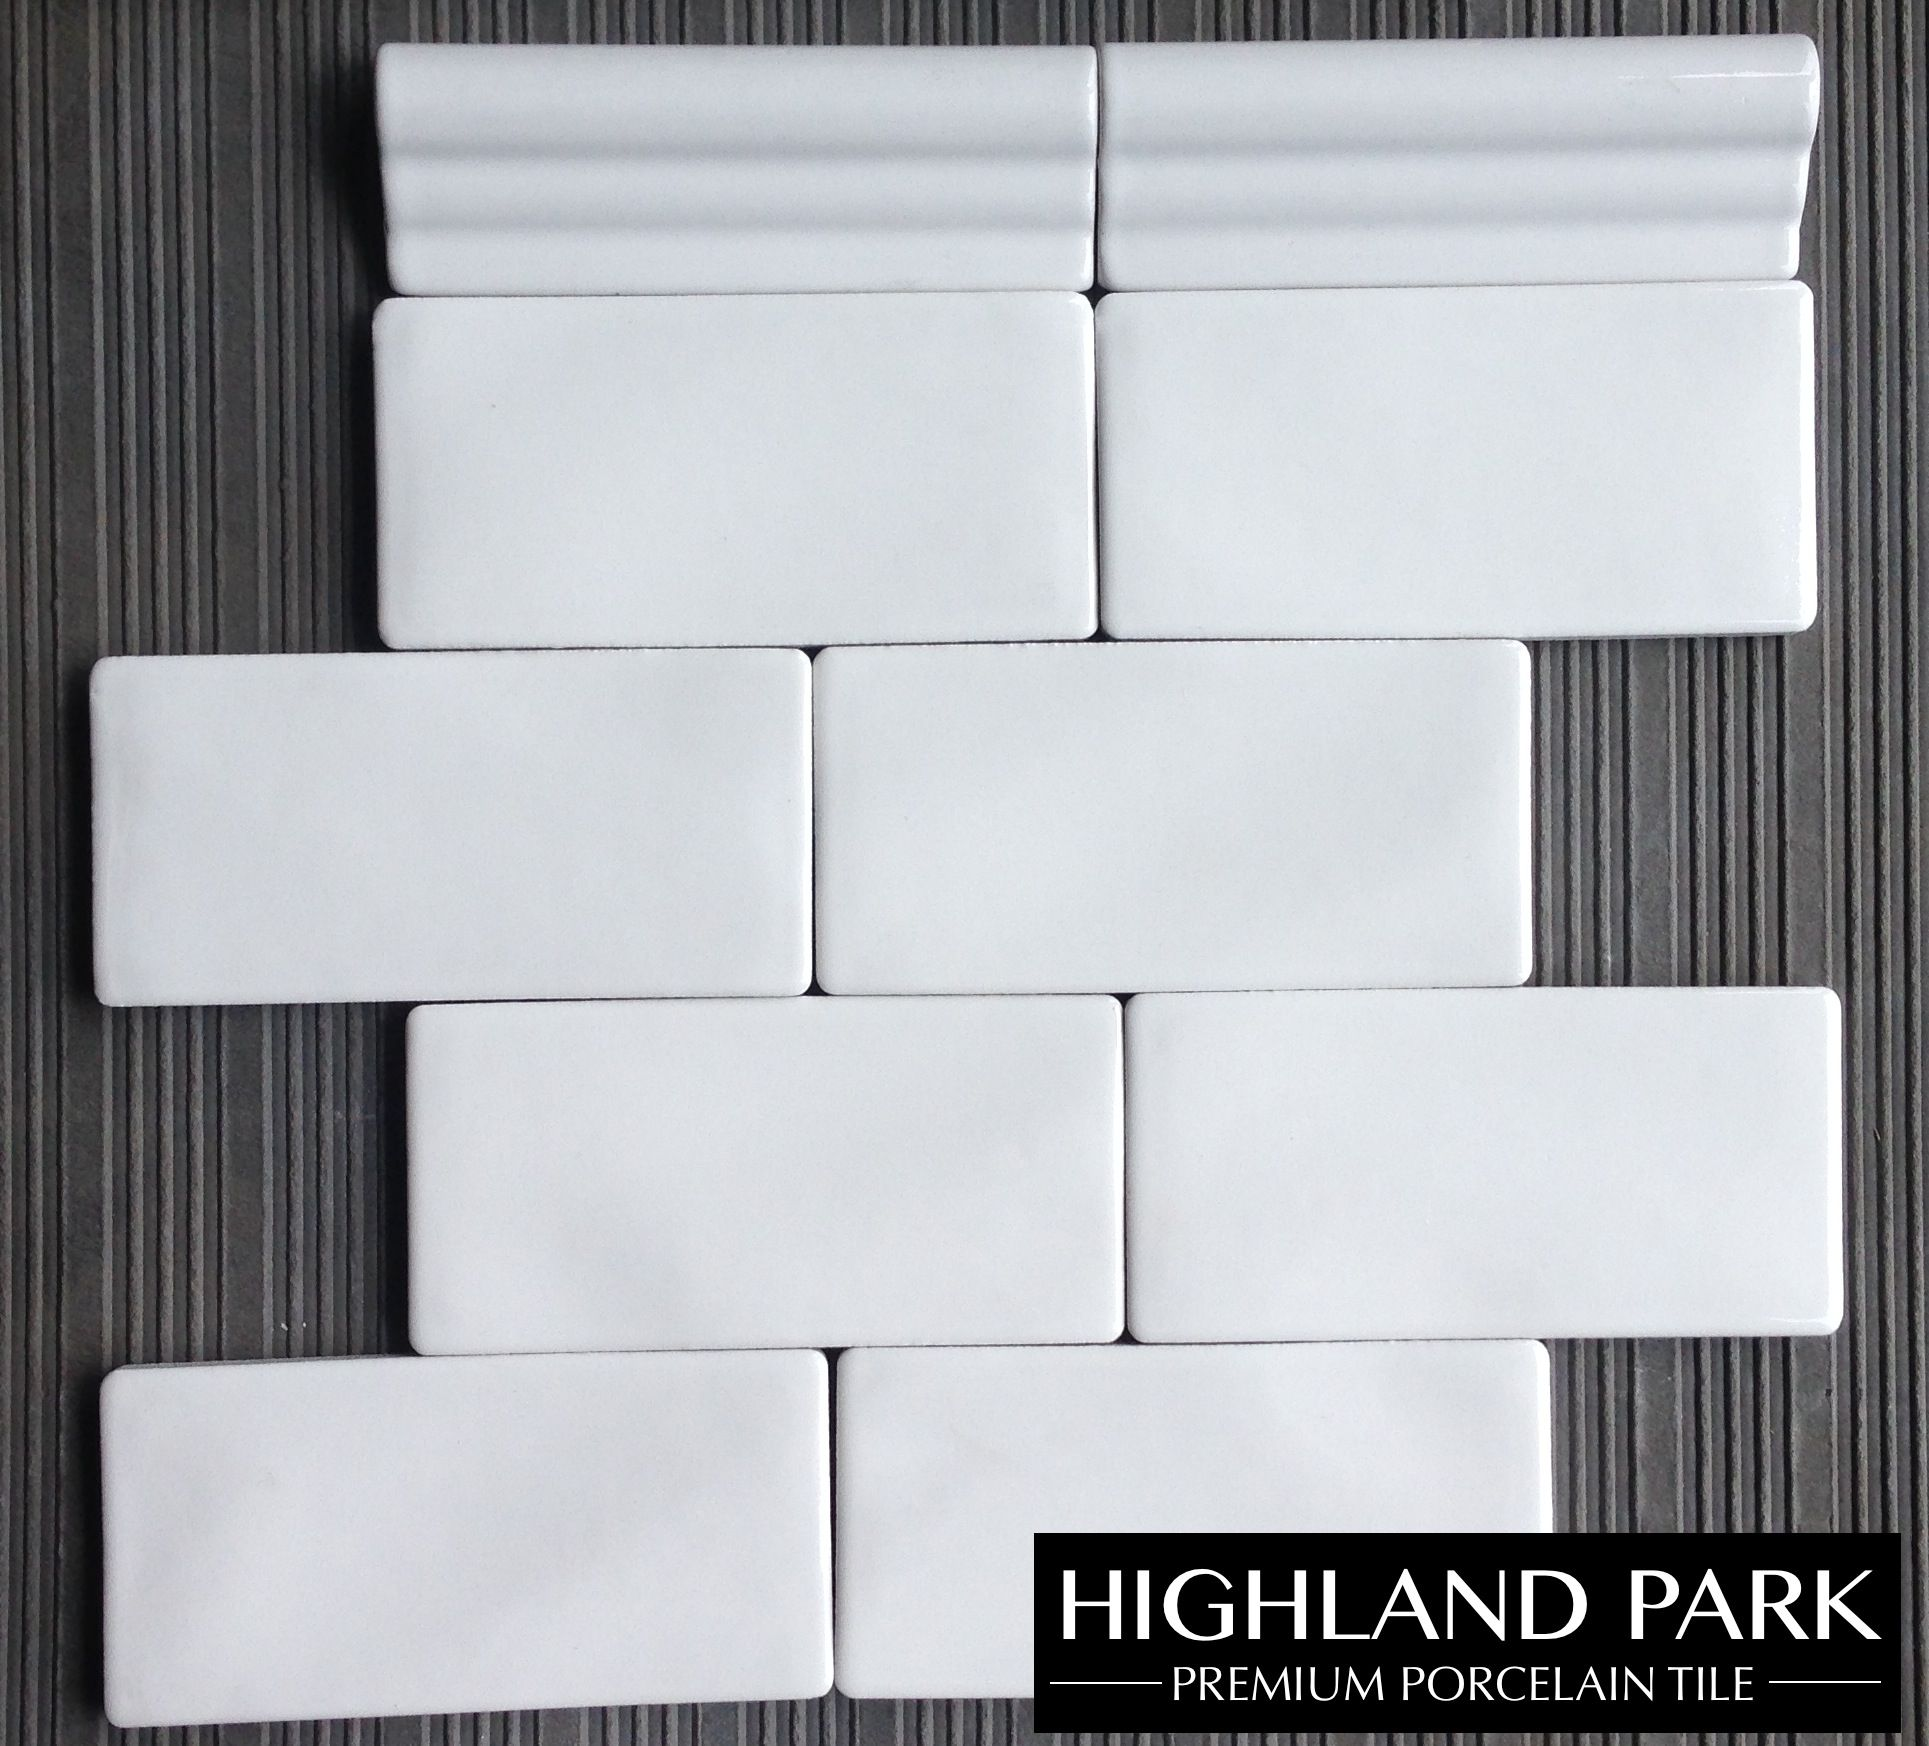 Premium handcrafted porcelain 3x6 subway tile whisper white premium handcrafted porcelain 3x6 subway tile whisper white available online 850 a square foot dailygadgetfo Choice Image